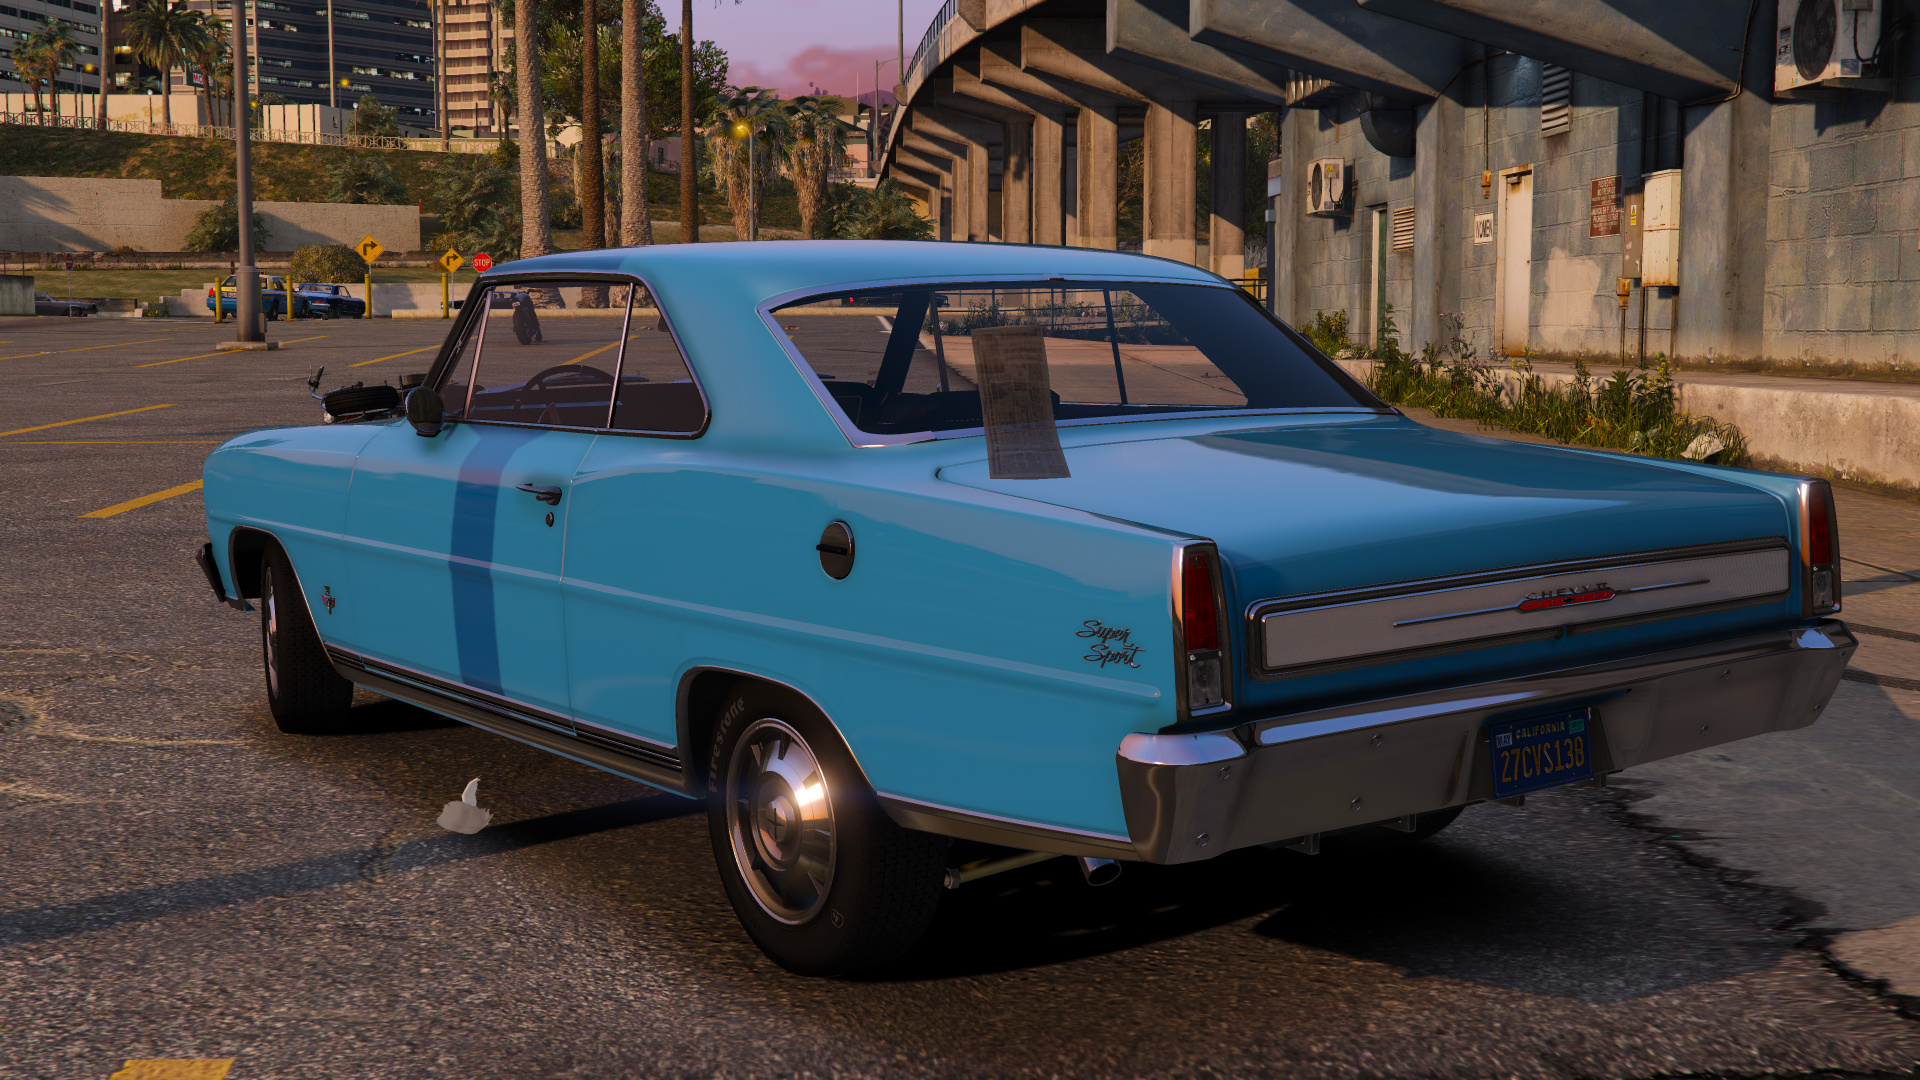 1966 Chevrolet Chevy Ii Nova Ss Gta5 Modscom B2f18f Grand Theft Auto V Screenshot 20180107 00165403 25686183368 O